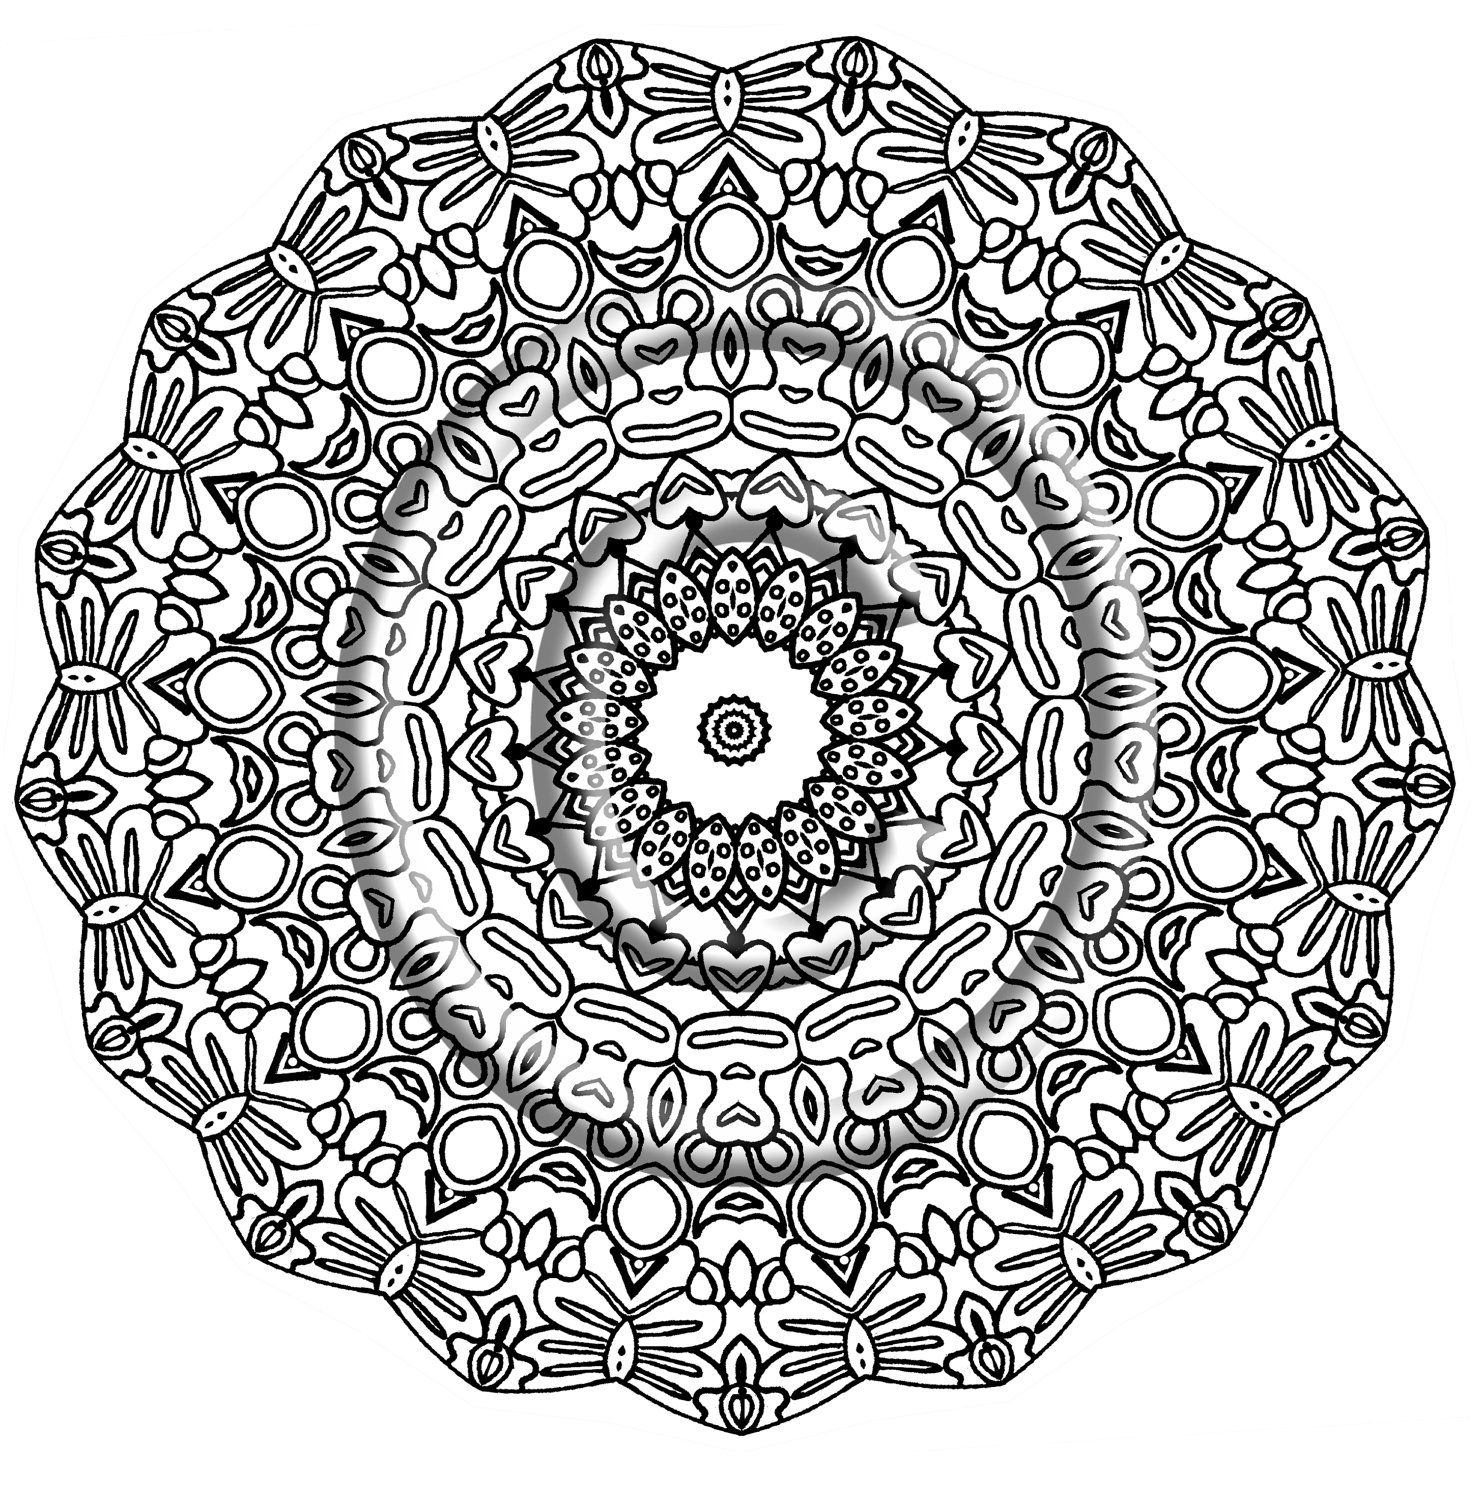 Coloring pages of mehndi hand pattern - Image Detail For Coloring Page Hand Drawn Zentangle Mehndi Inspired Psychedelic